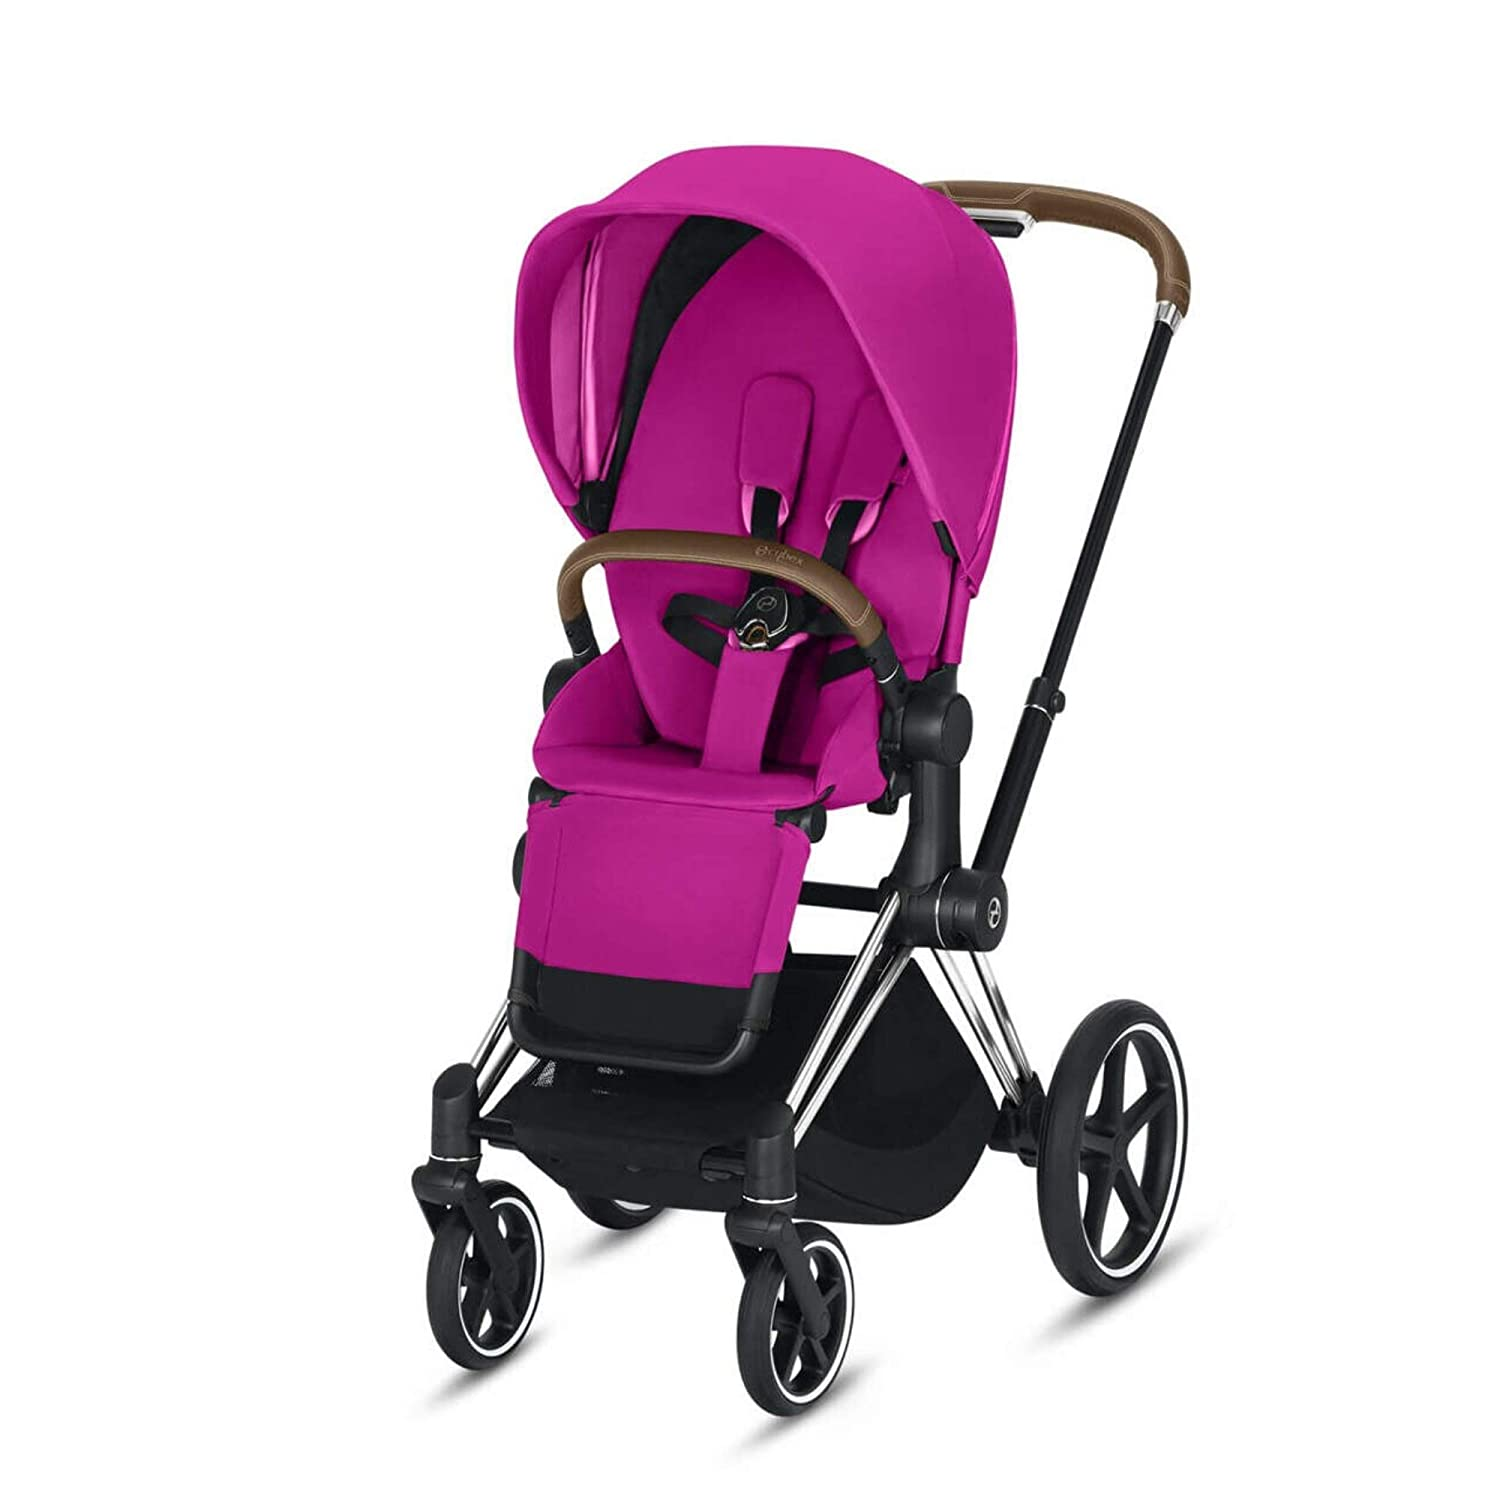 Cybex Priam 3 Complete Stroller, One-Hand Compact Fold, Reversible Seat, Smooth Ride All-Wheel Suspension, Extra Storage, Adjustable Leg Rest, Fancy Pink with Chrome/Brown Frame